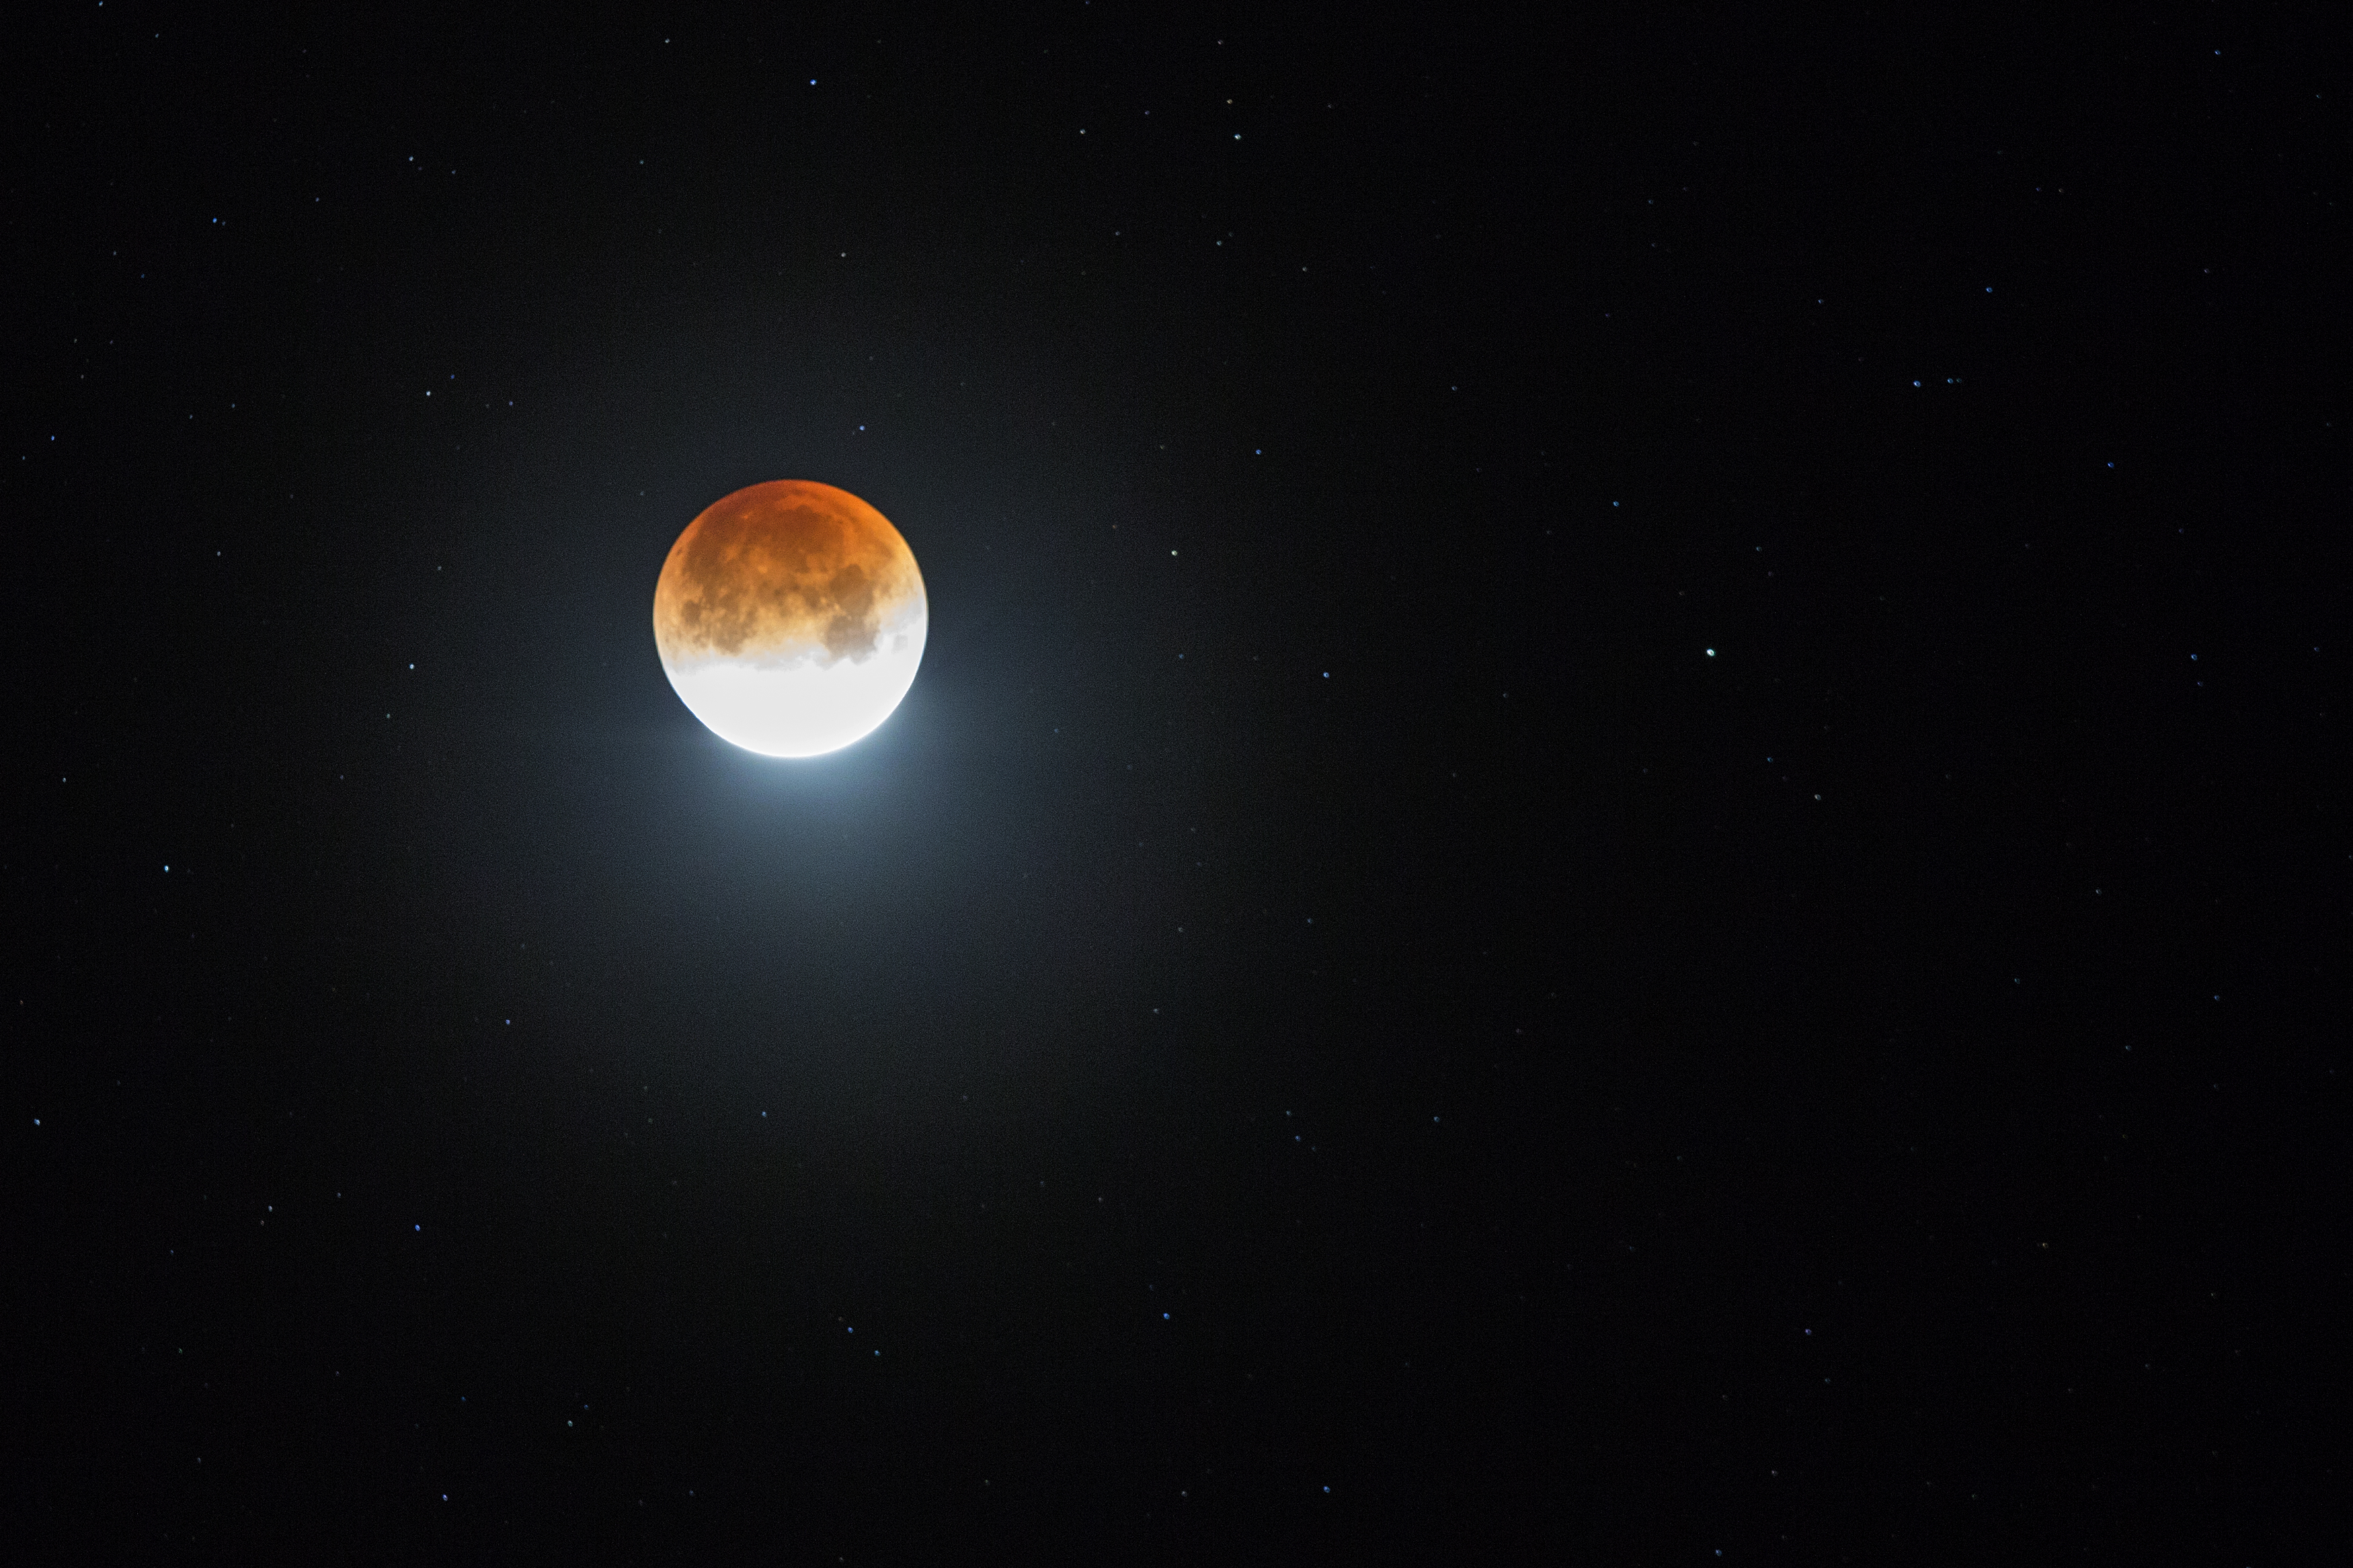 """Rare """"super blue blood moon"""" effect appears on the West Coast on January 31, 2018. The moon appears bigger and brighter than usual."""